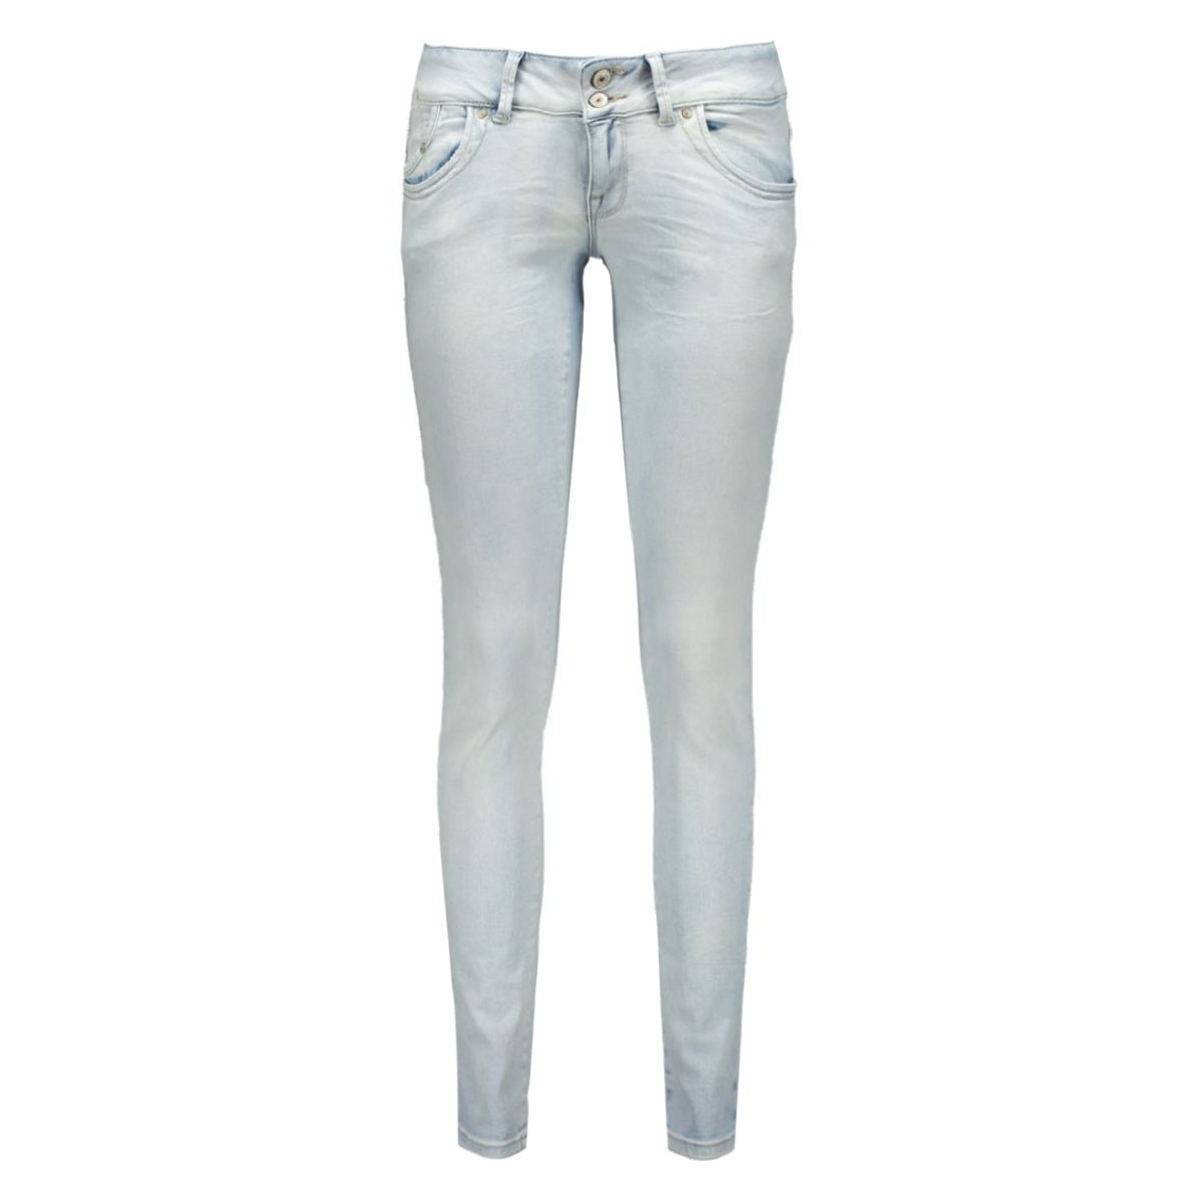 10095065.13497 molly ltb jeans sorna wash